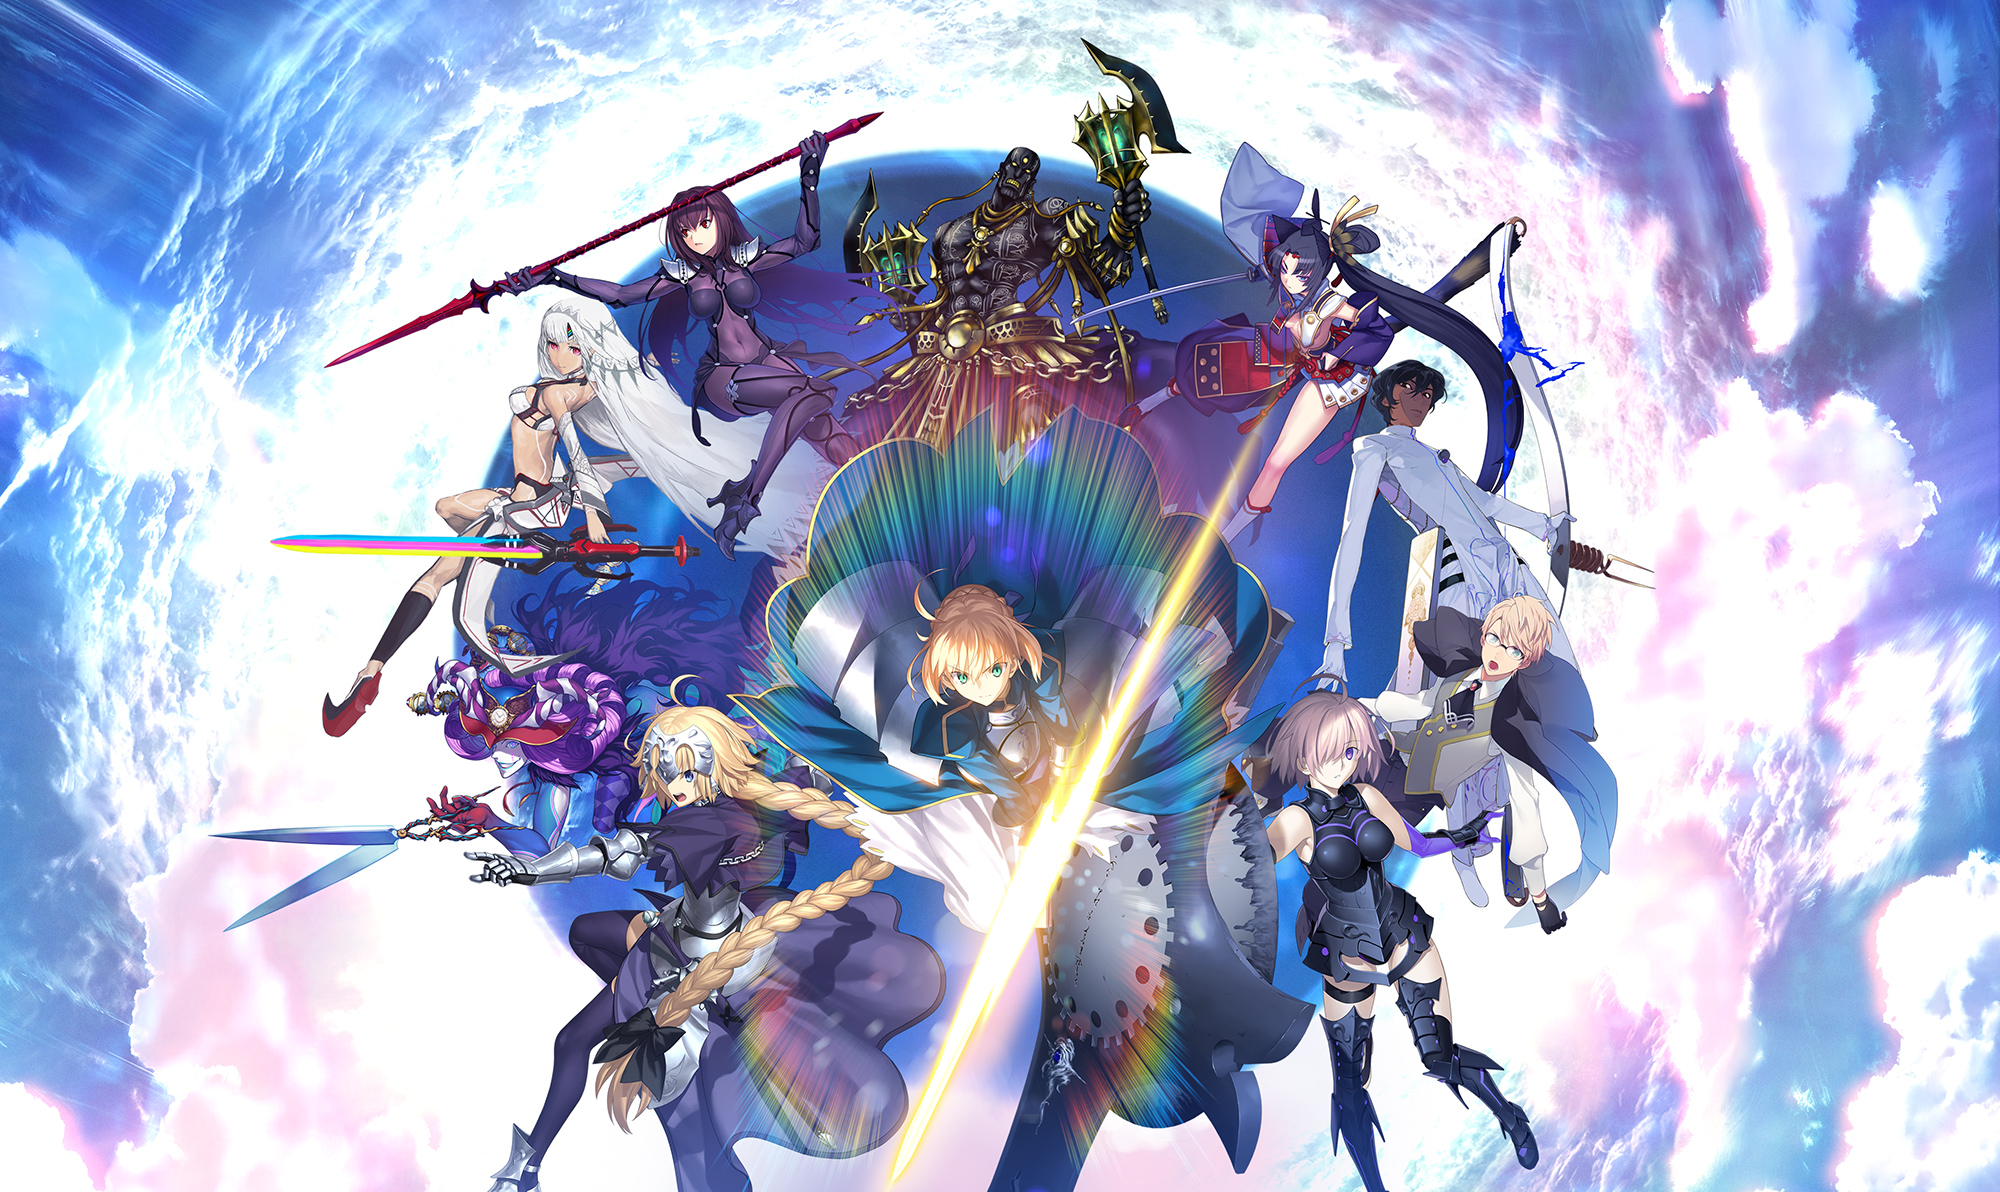 Main Quest | Fate/Grand Order Wikia | FANDOM powered by Wikia